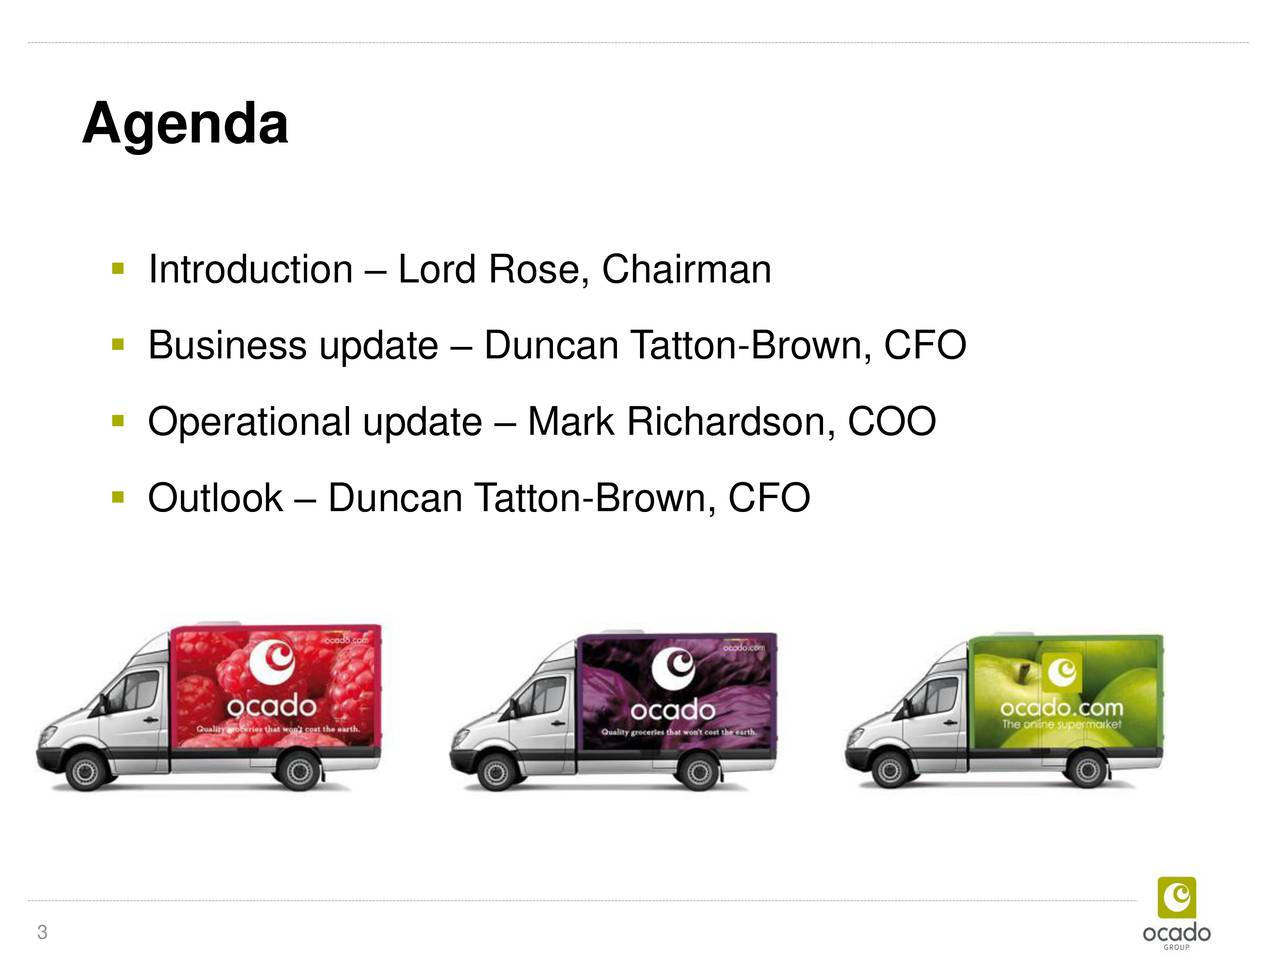 Introduction  Lord Rose, Chairman Business update  Duncan Tatton-Brown, CFO Operational update  Mark Richardson, COO Outlook  Duncan Tatton-Brown, CFO 3